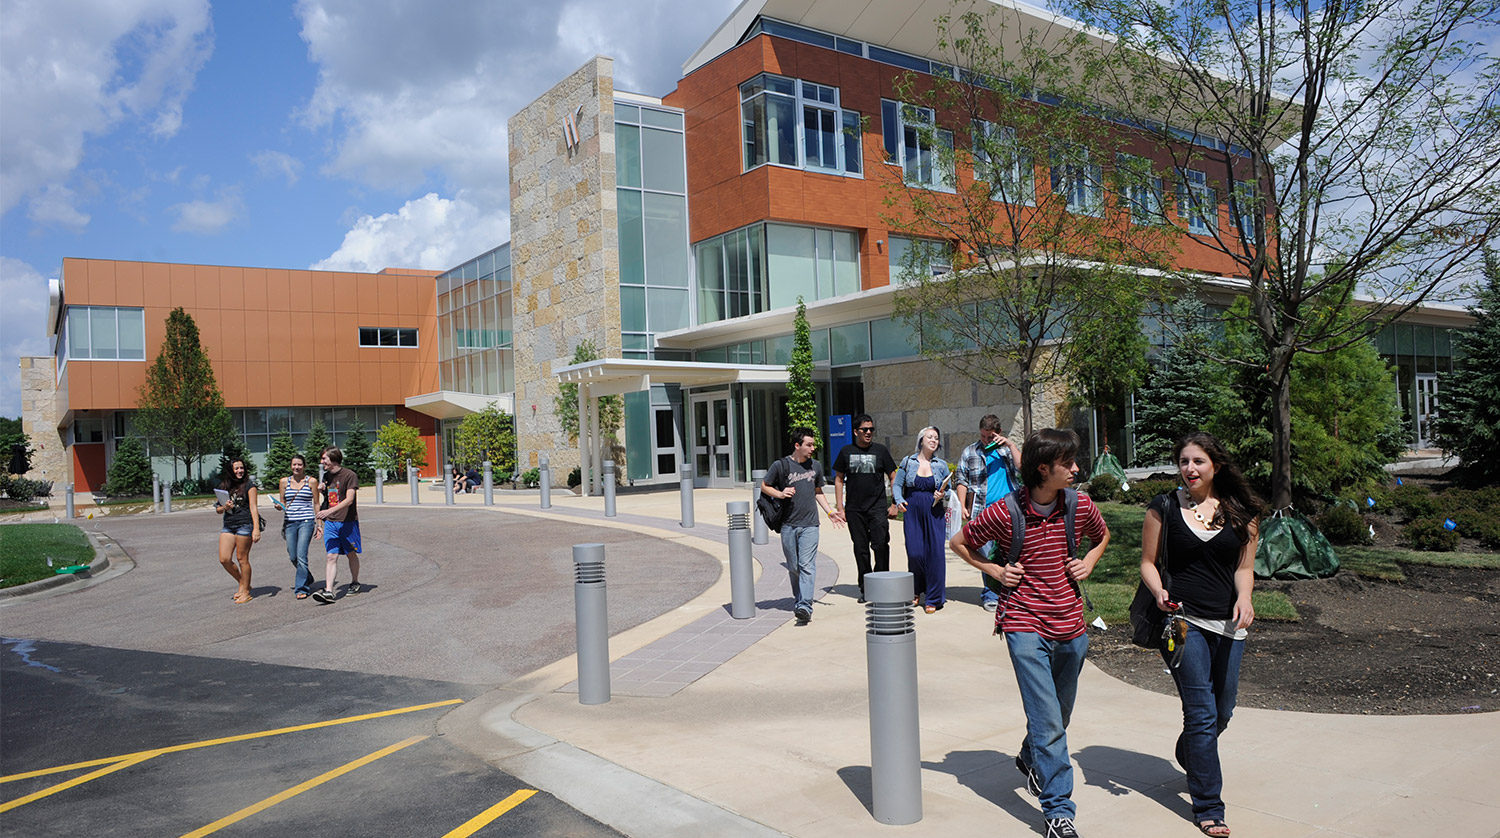 College of DuPage_ Culinary and Hospitality Center exterior with people